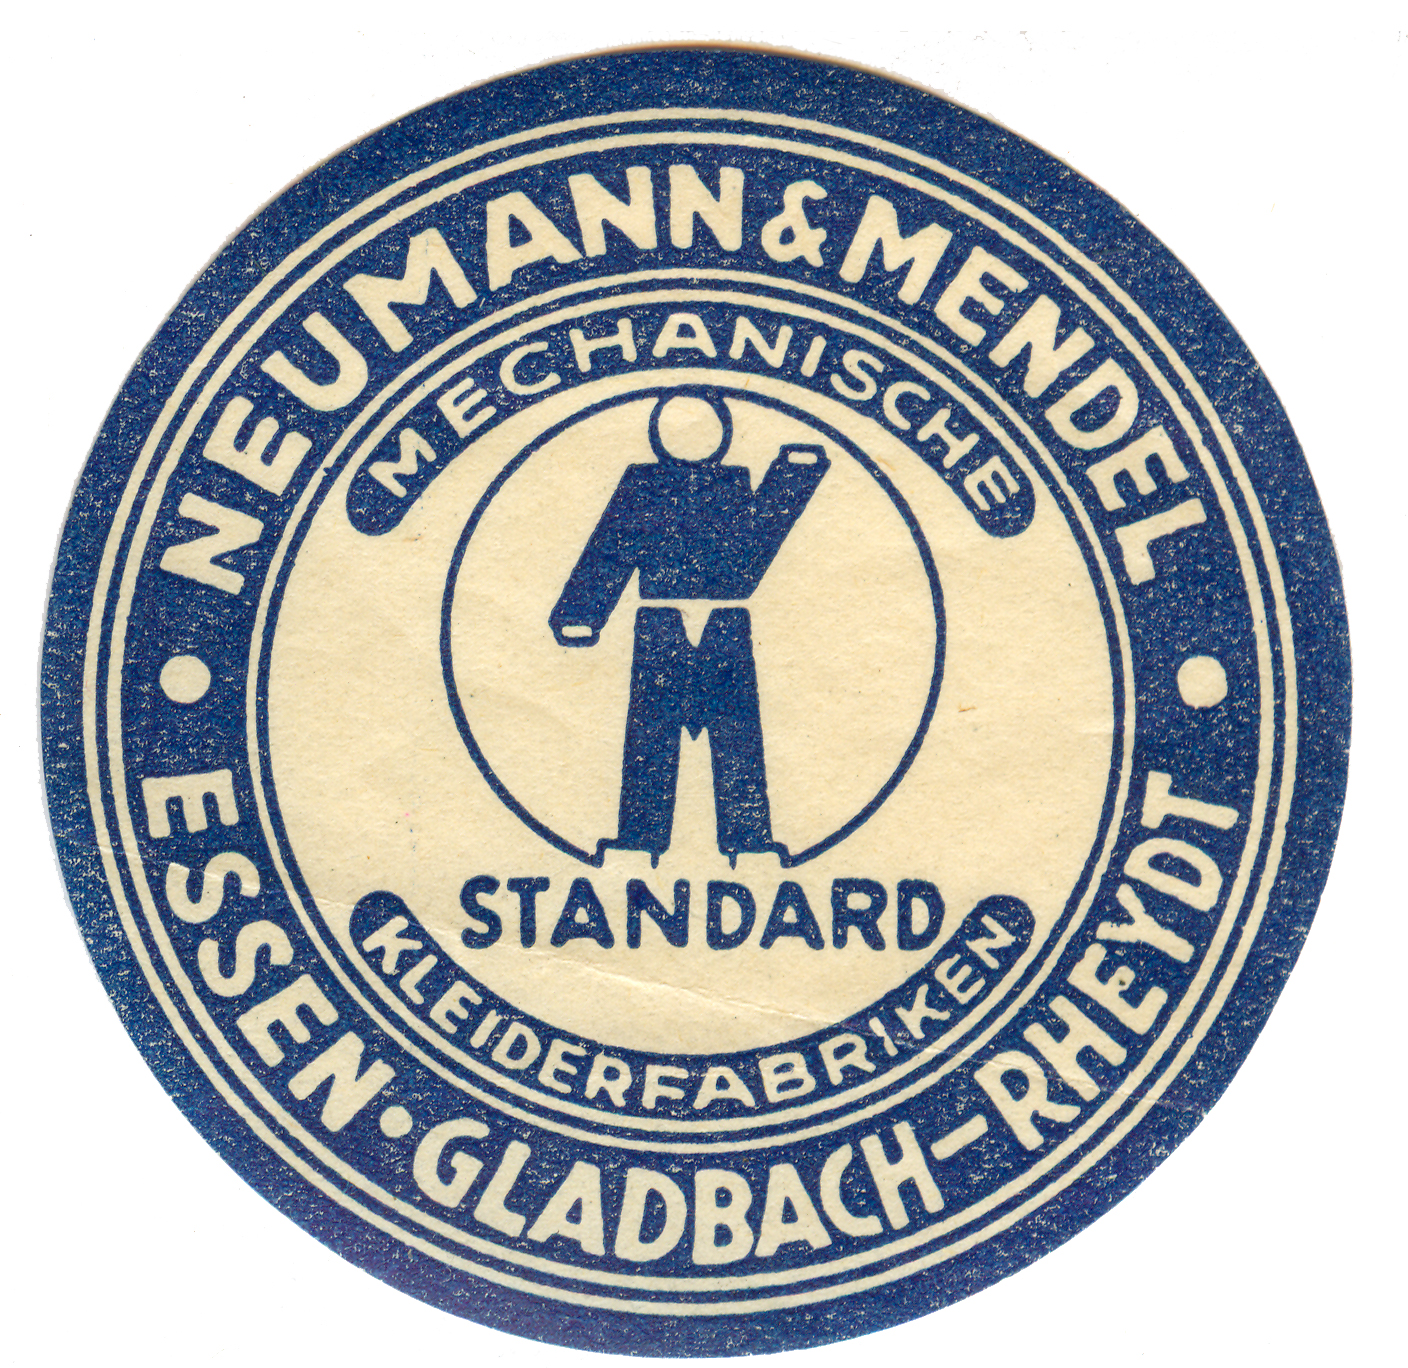 Neumann & Mendel Company Logo. © Wiener Library Photo Collection